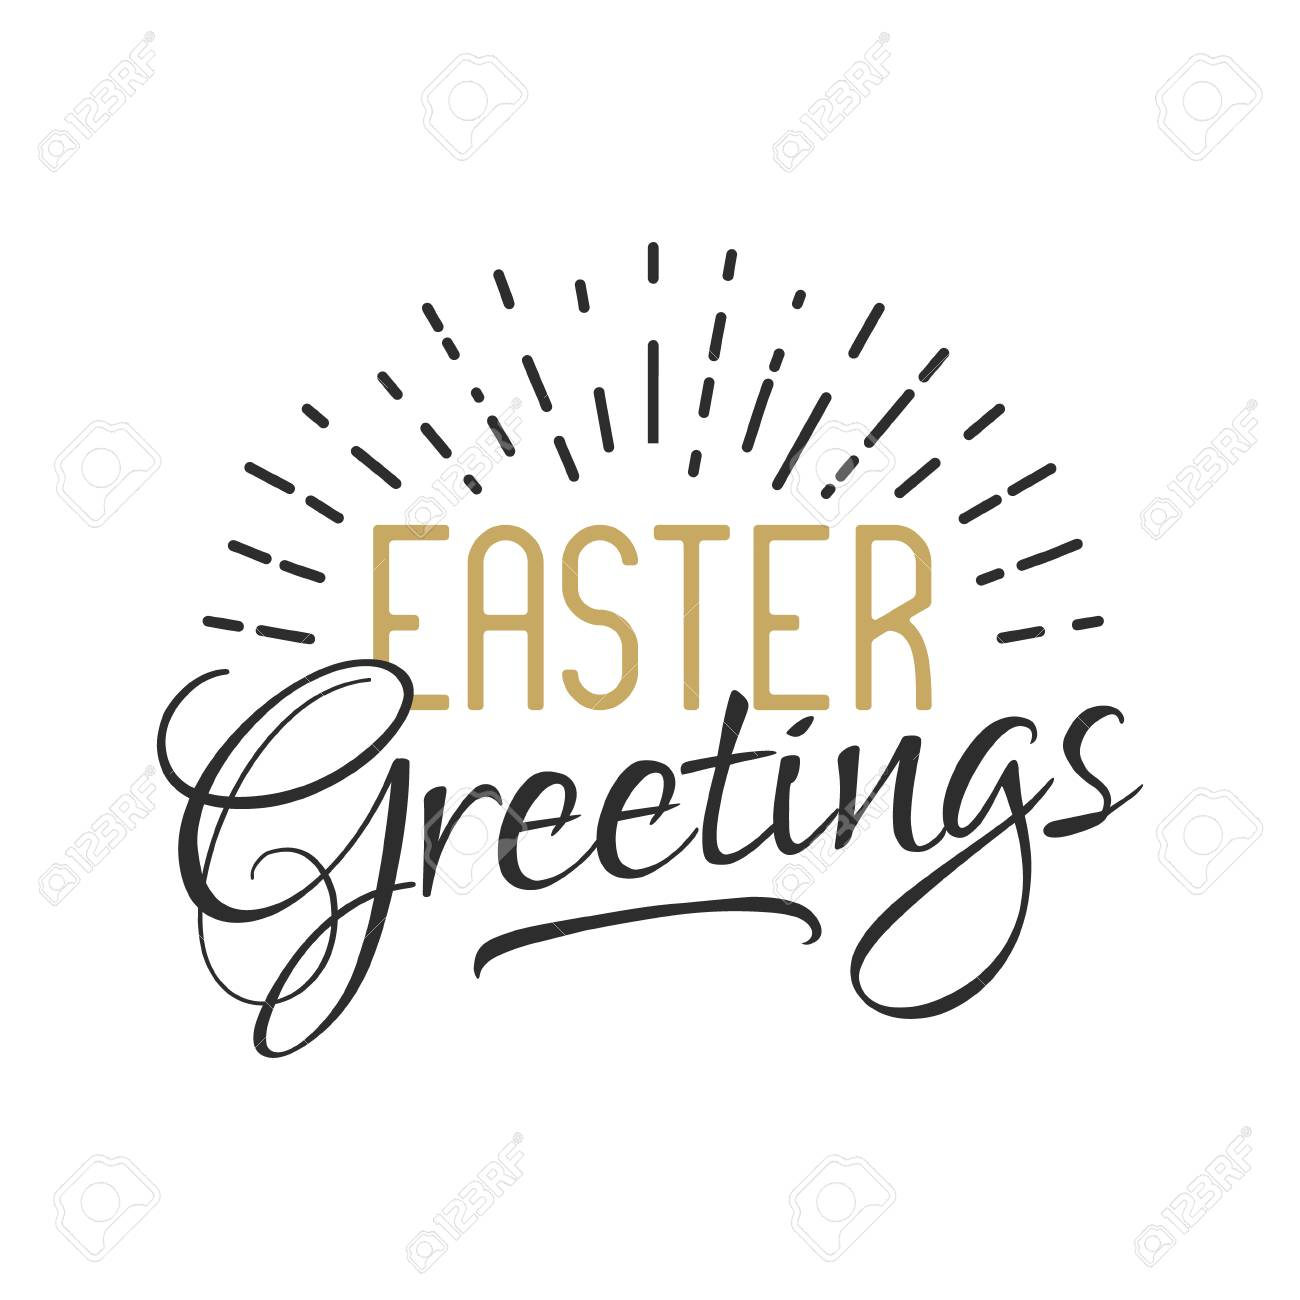 Easter sign easter greetings easter wishes overlay lettering easter sign easter greetings easter wishes overlay lettering label design retro holiday m4hsunfo